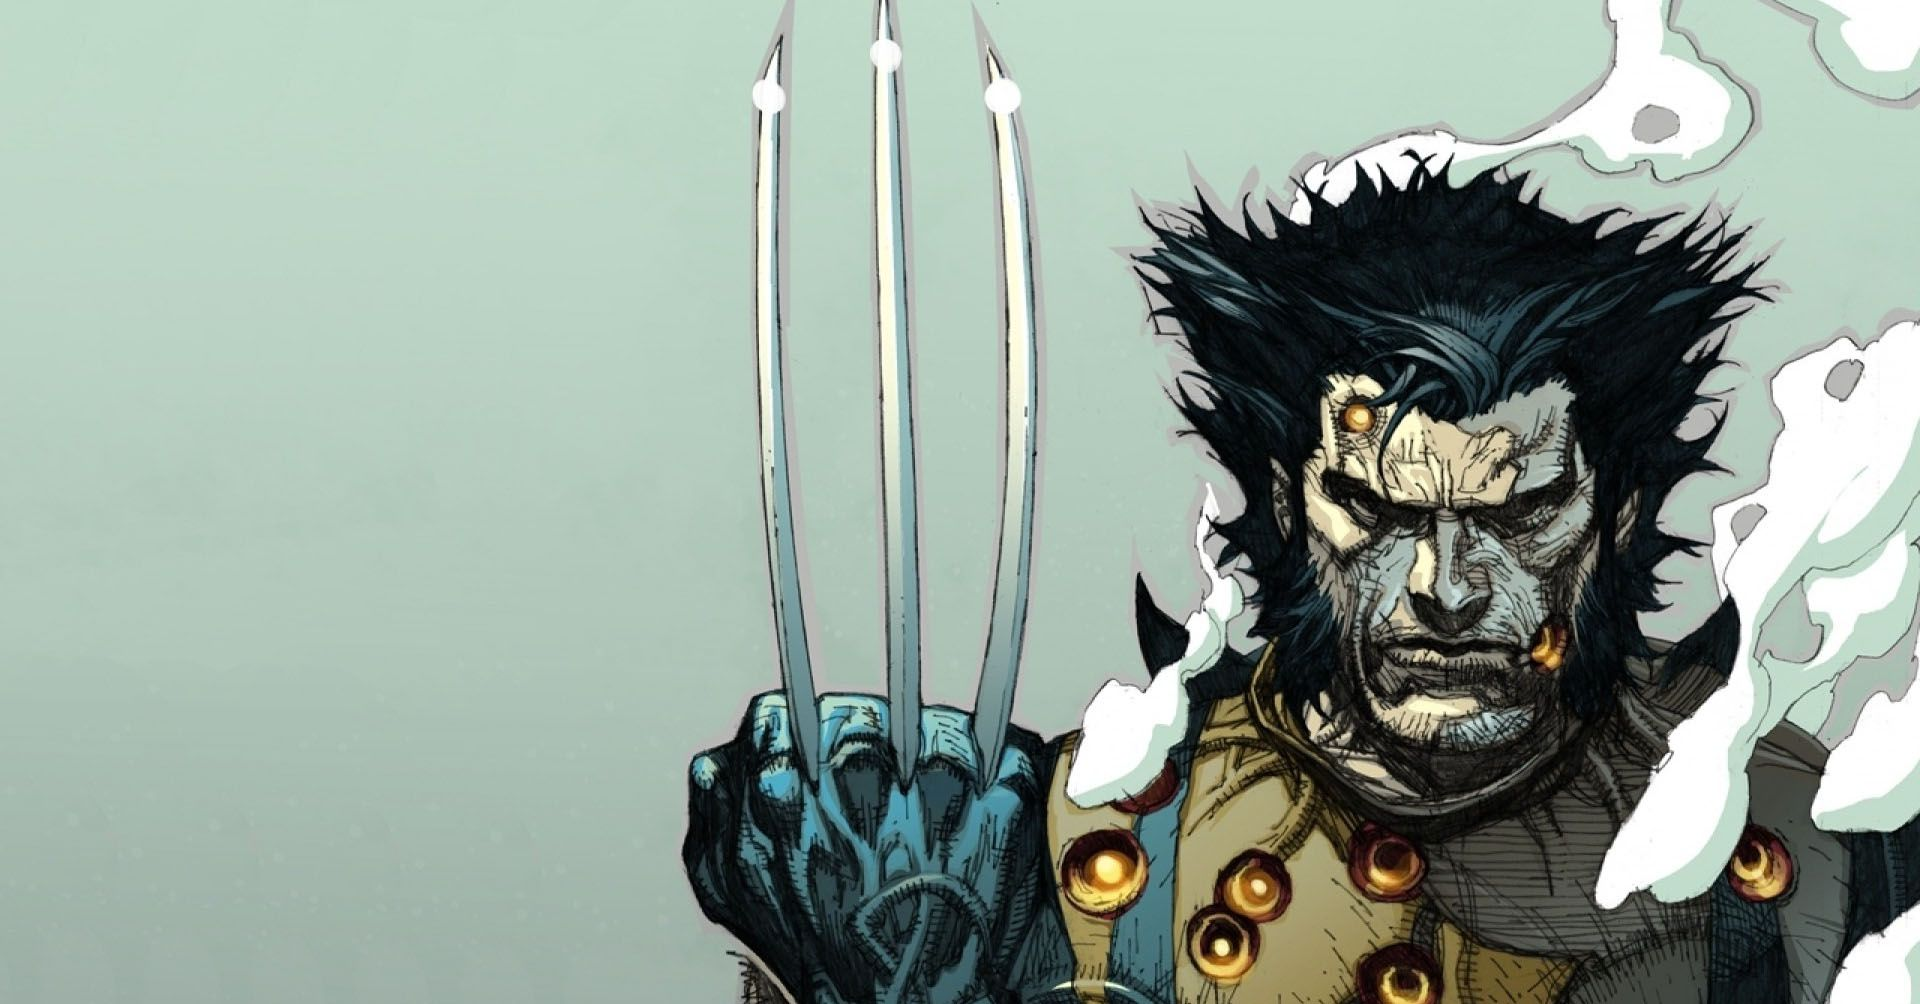 Wolverine Wallpaper Hd Download